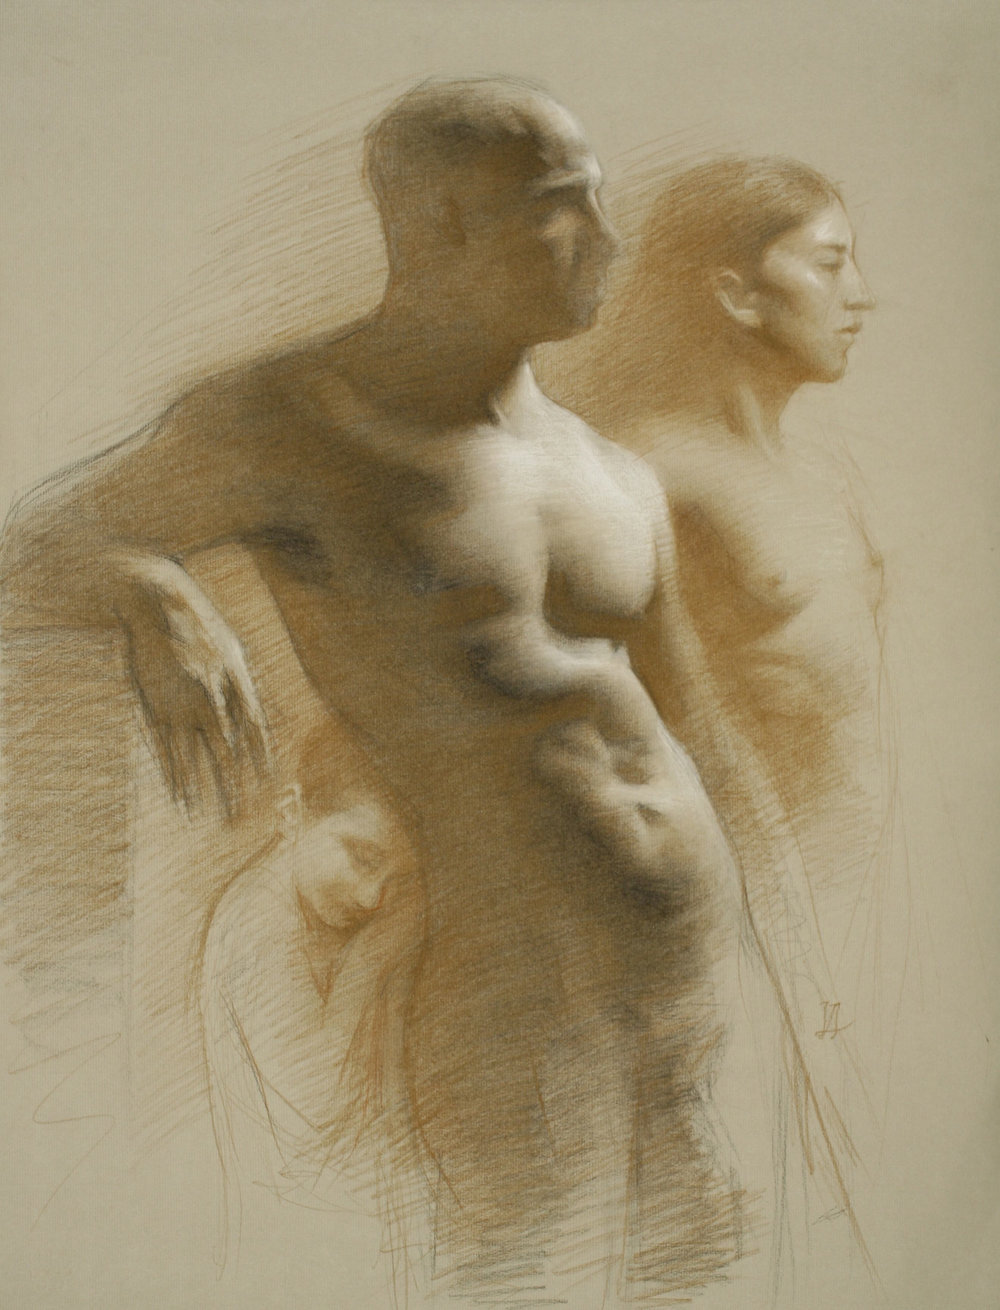 Juliette Aristides_Olympus_18x24_Charcoal and Sepia on Toned Paper heightened with White_2012.jpg